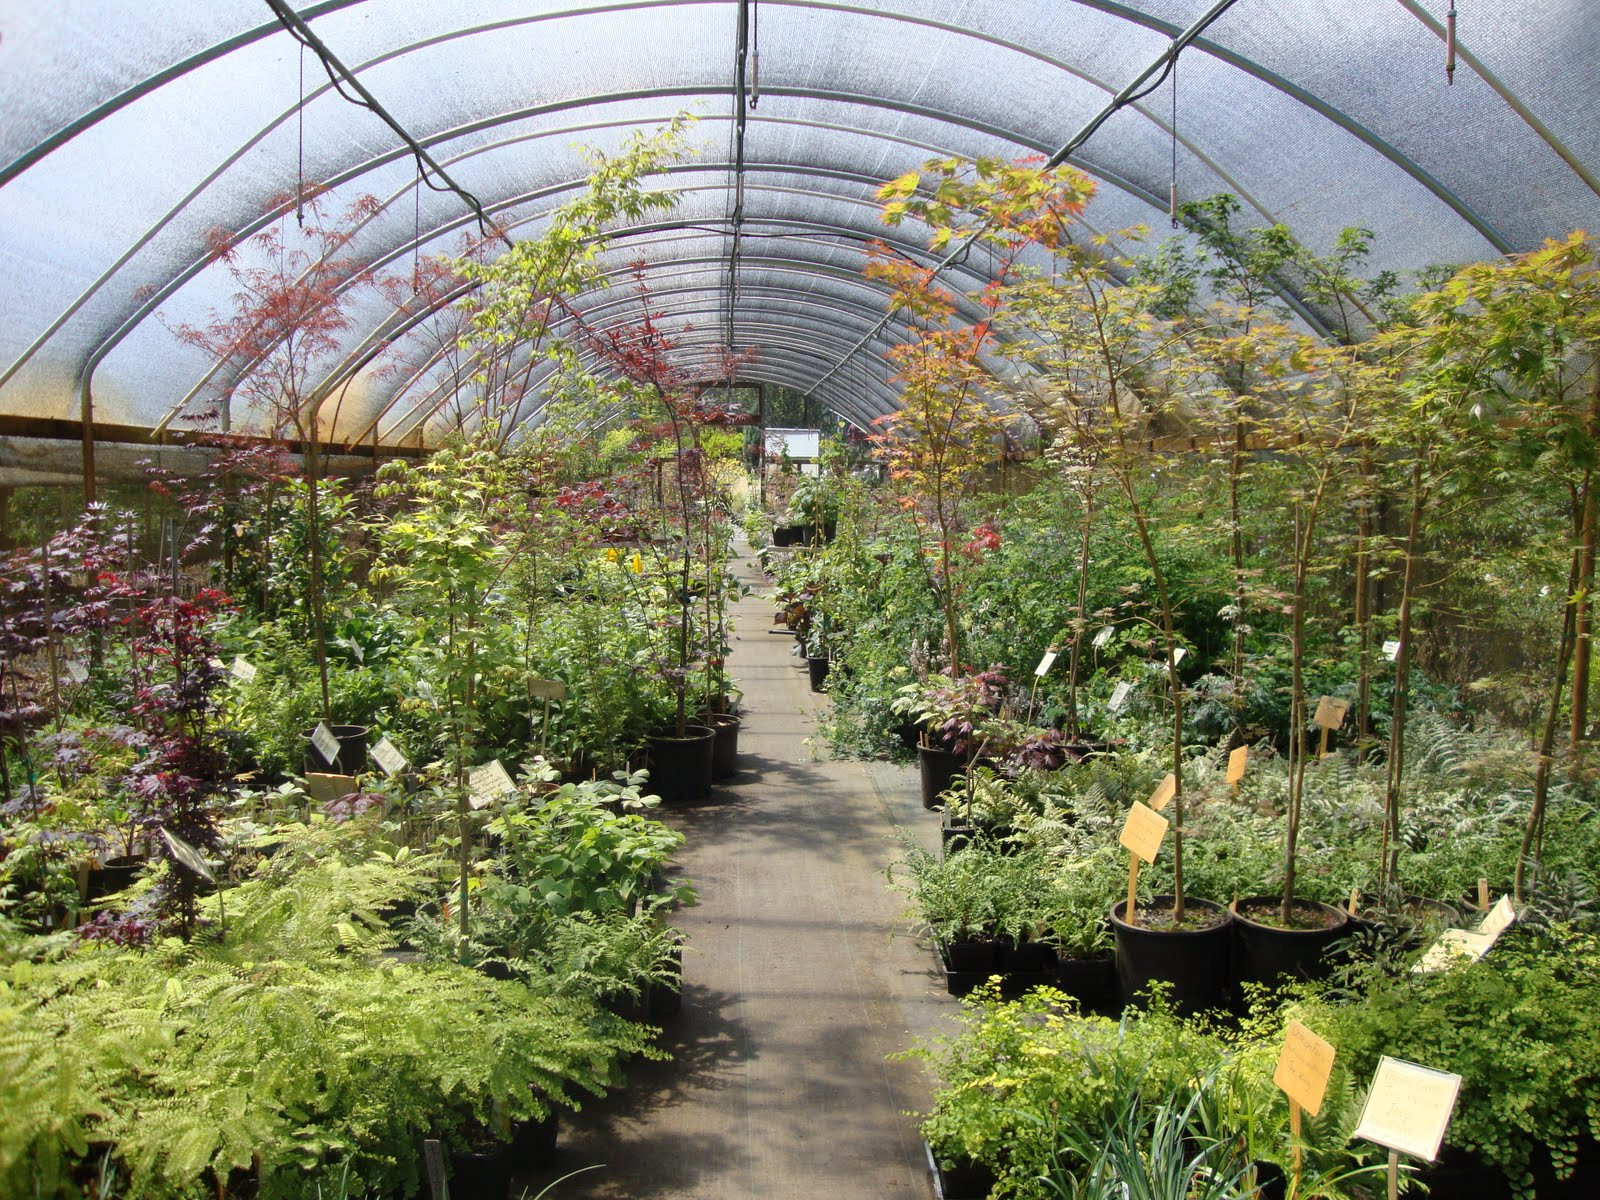 After Visiting Bauman S Farm Fry Road And Mosaic Gardens My Last Stop Of The Day Was To Be Dancing Oaks Nursery In Monmouth Oregon